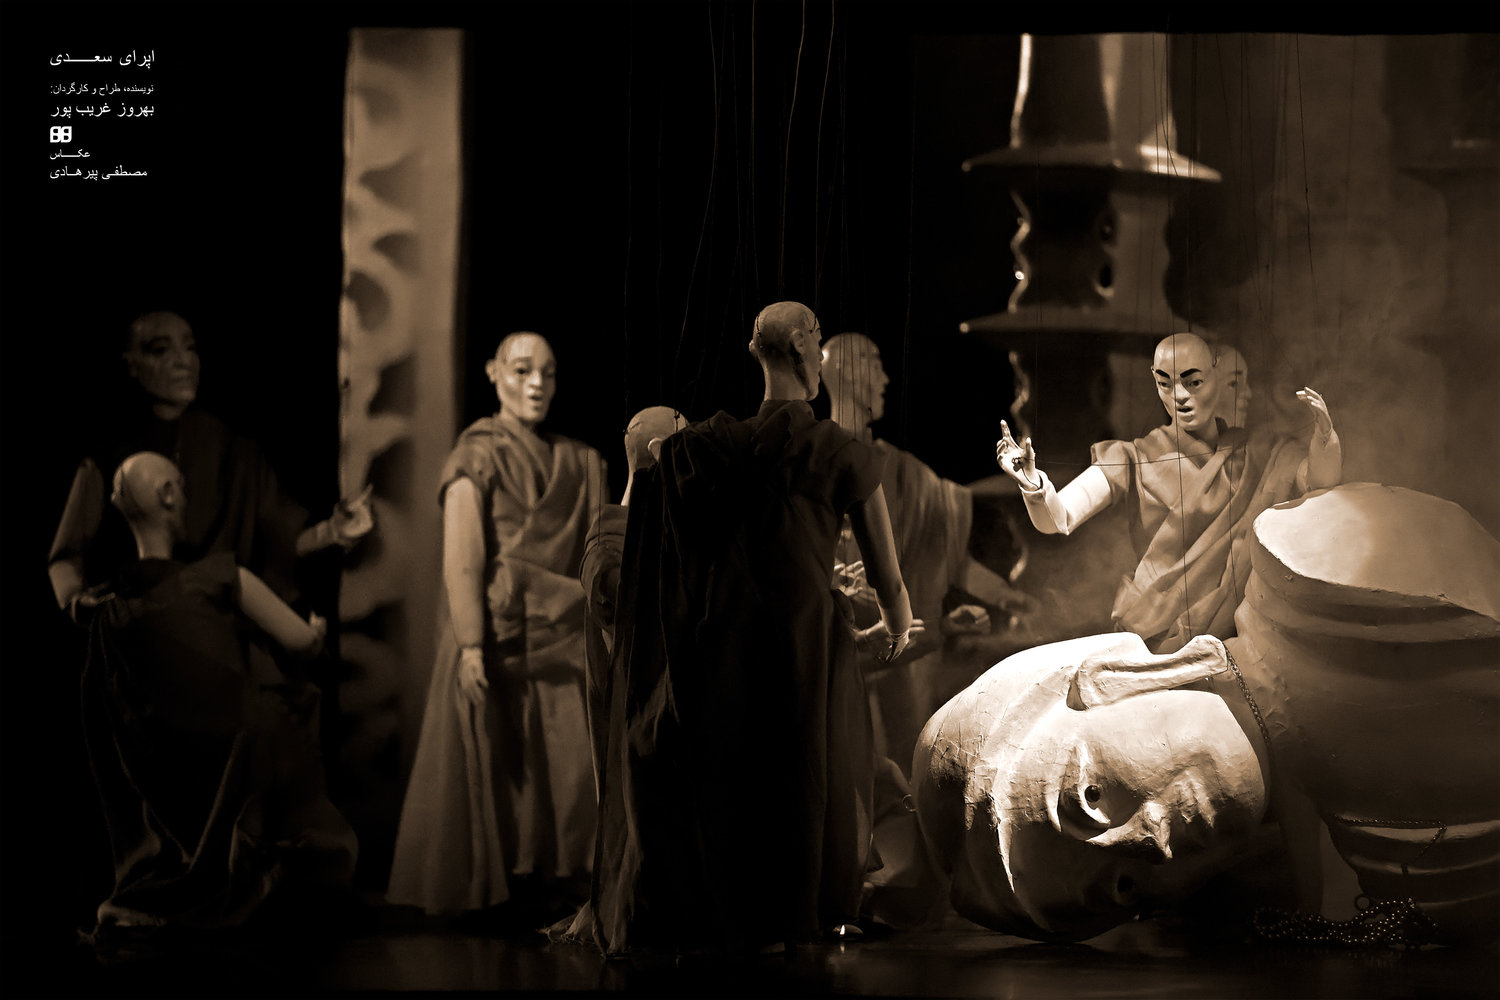 Marionette opera, <em>Sa'di</em> (2015), by Aran Puppet Theater Group (Tehran, Iran), direction by Behrooz Gharibpour. Photo courtesy of Behrooz Gharibpour